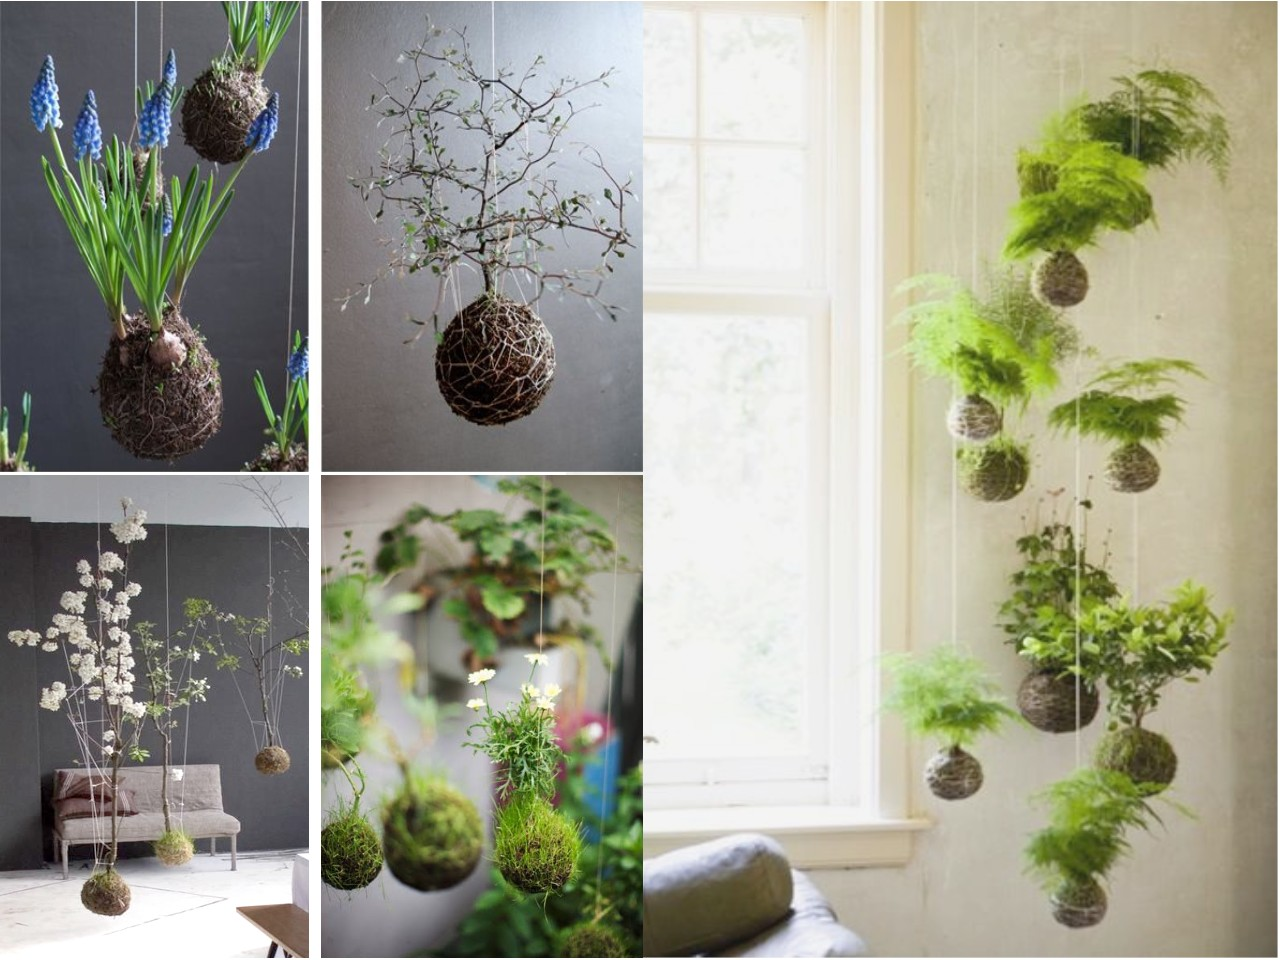 10 ideas de decoraci n con plantas colgantes for Decoracion de oficinas con plantas